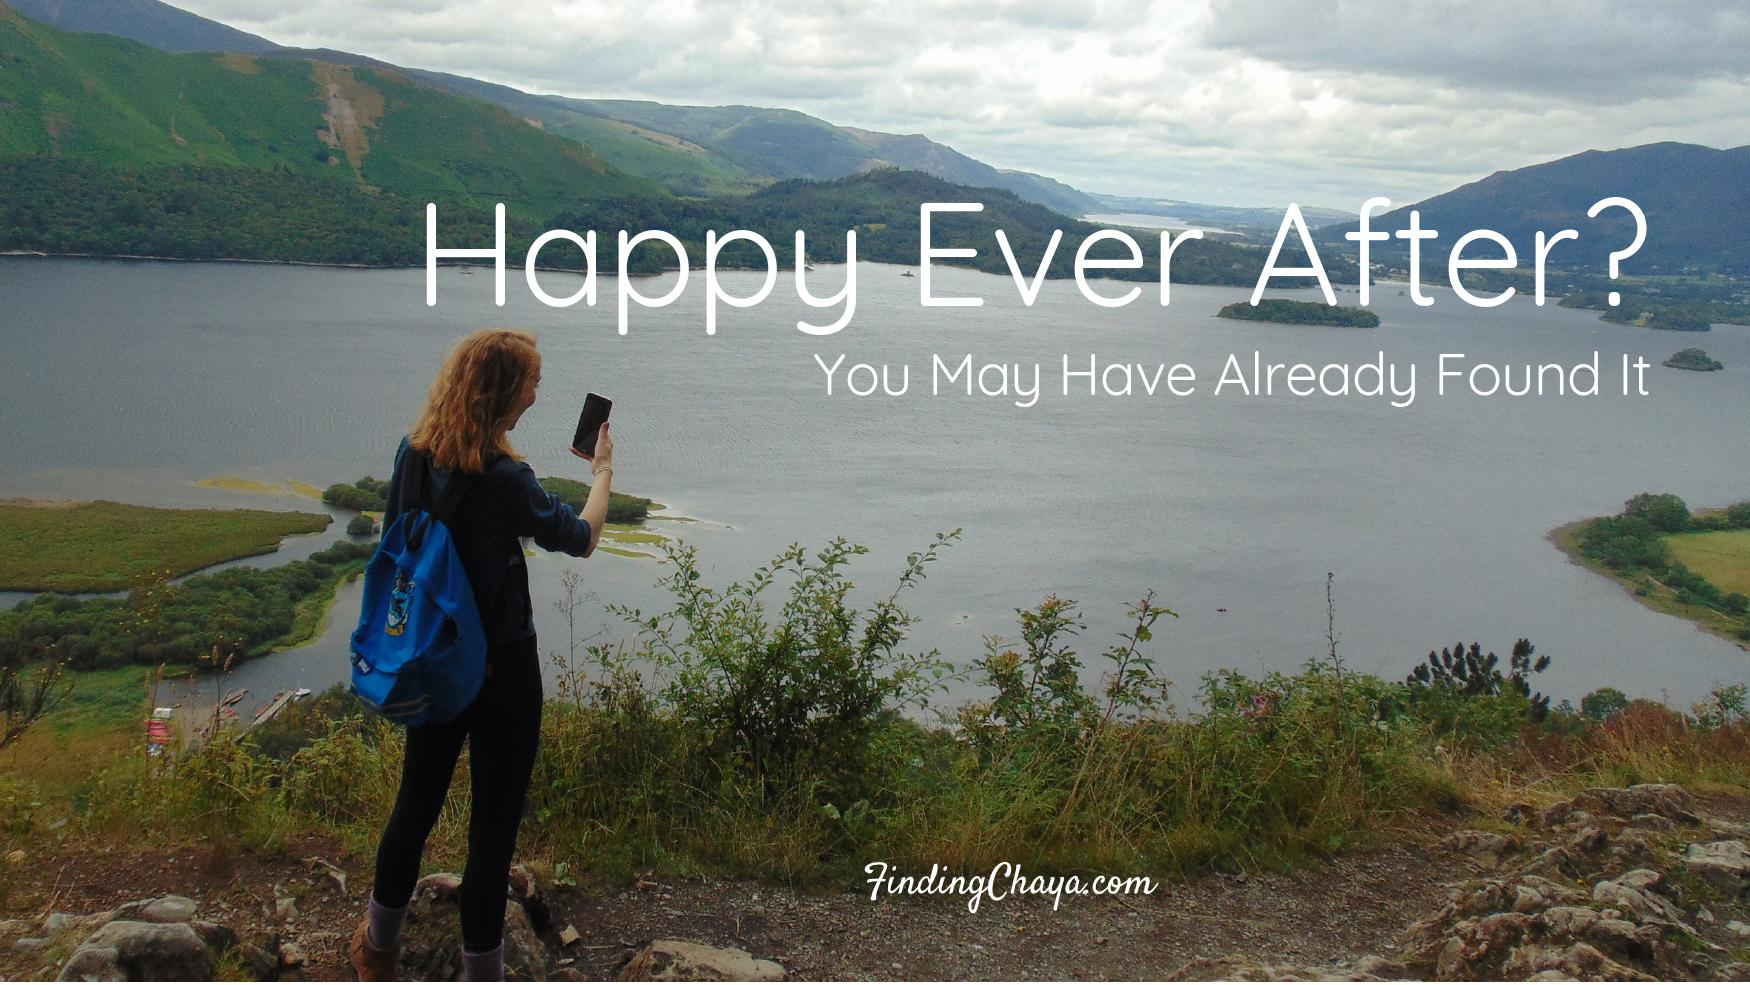 Happy Ever After? You May Have Already Found It